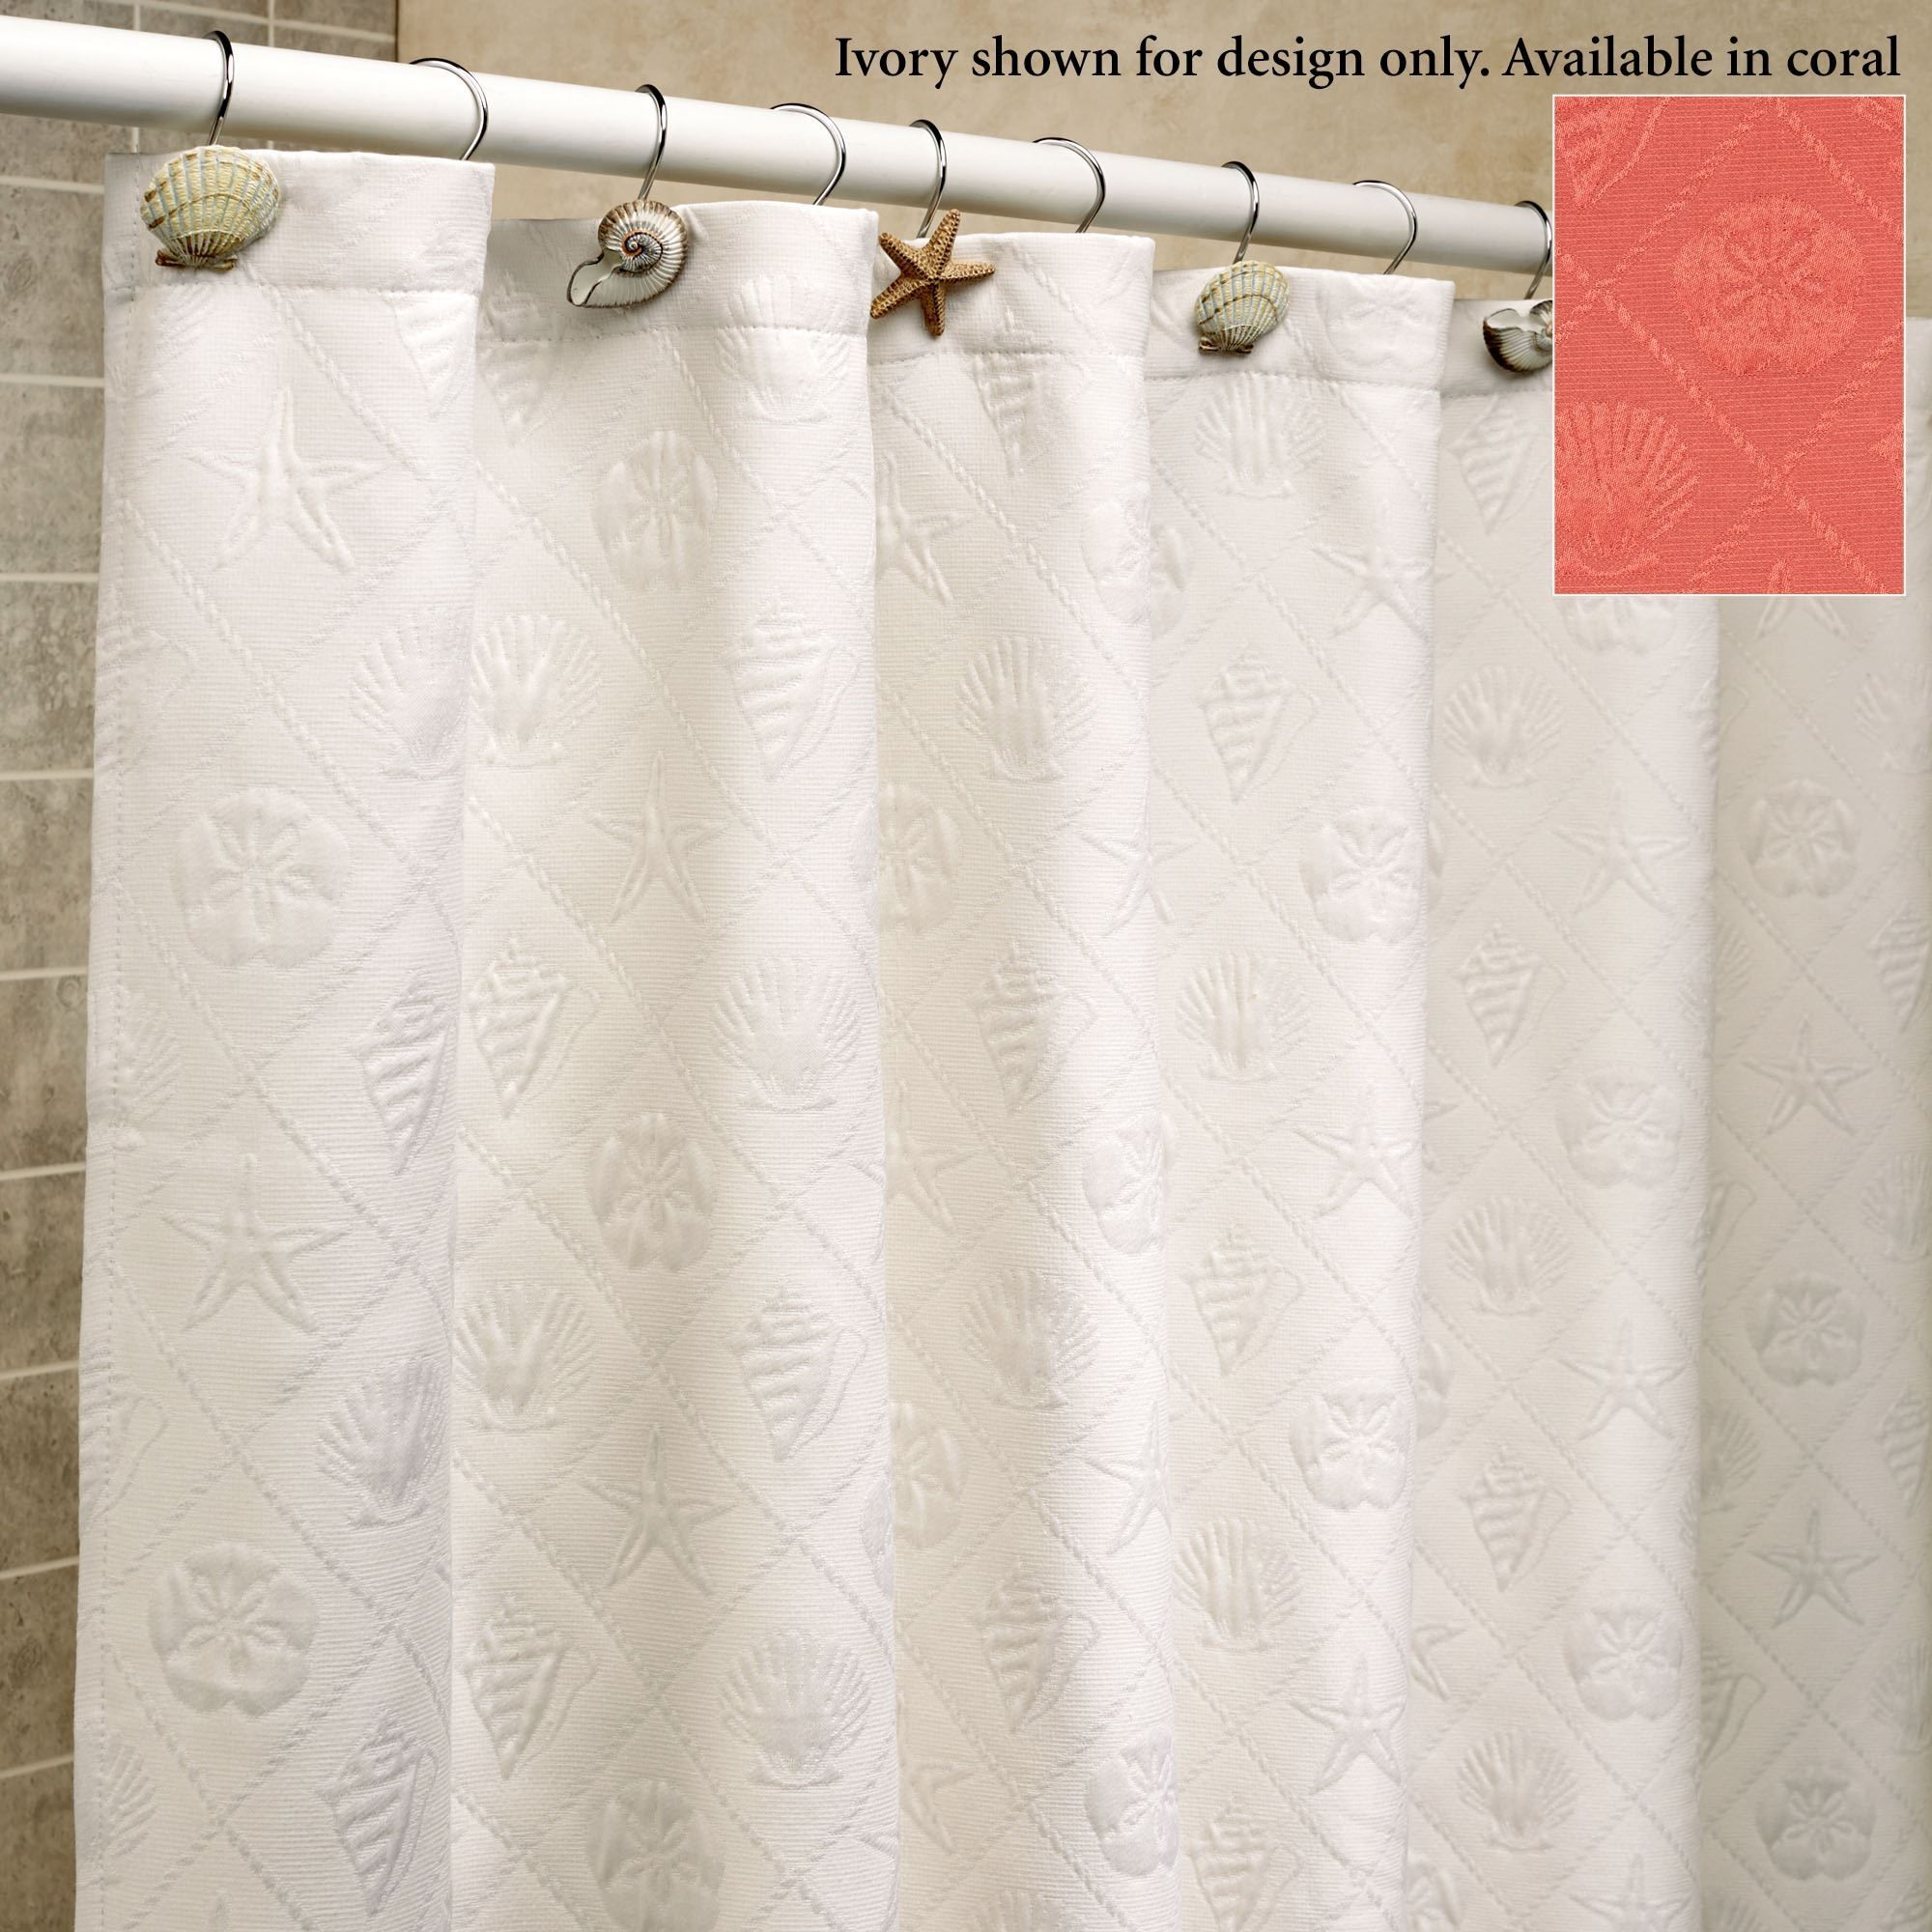 Pinzon signature diamond matelasse shower curtain white